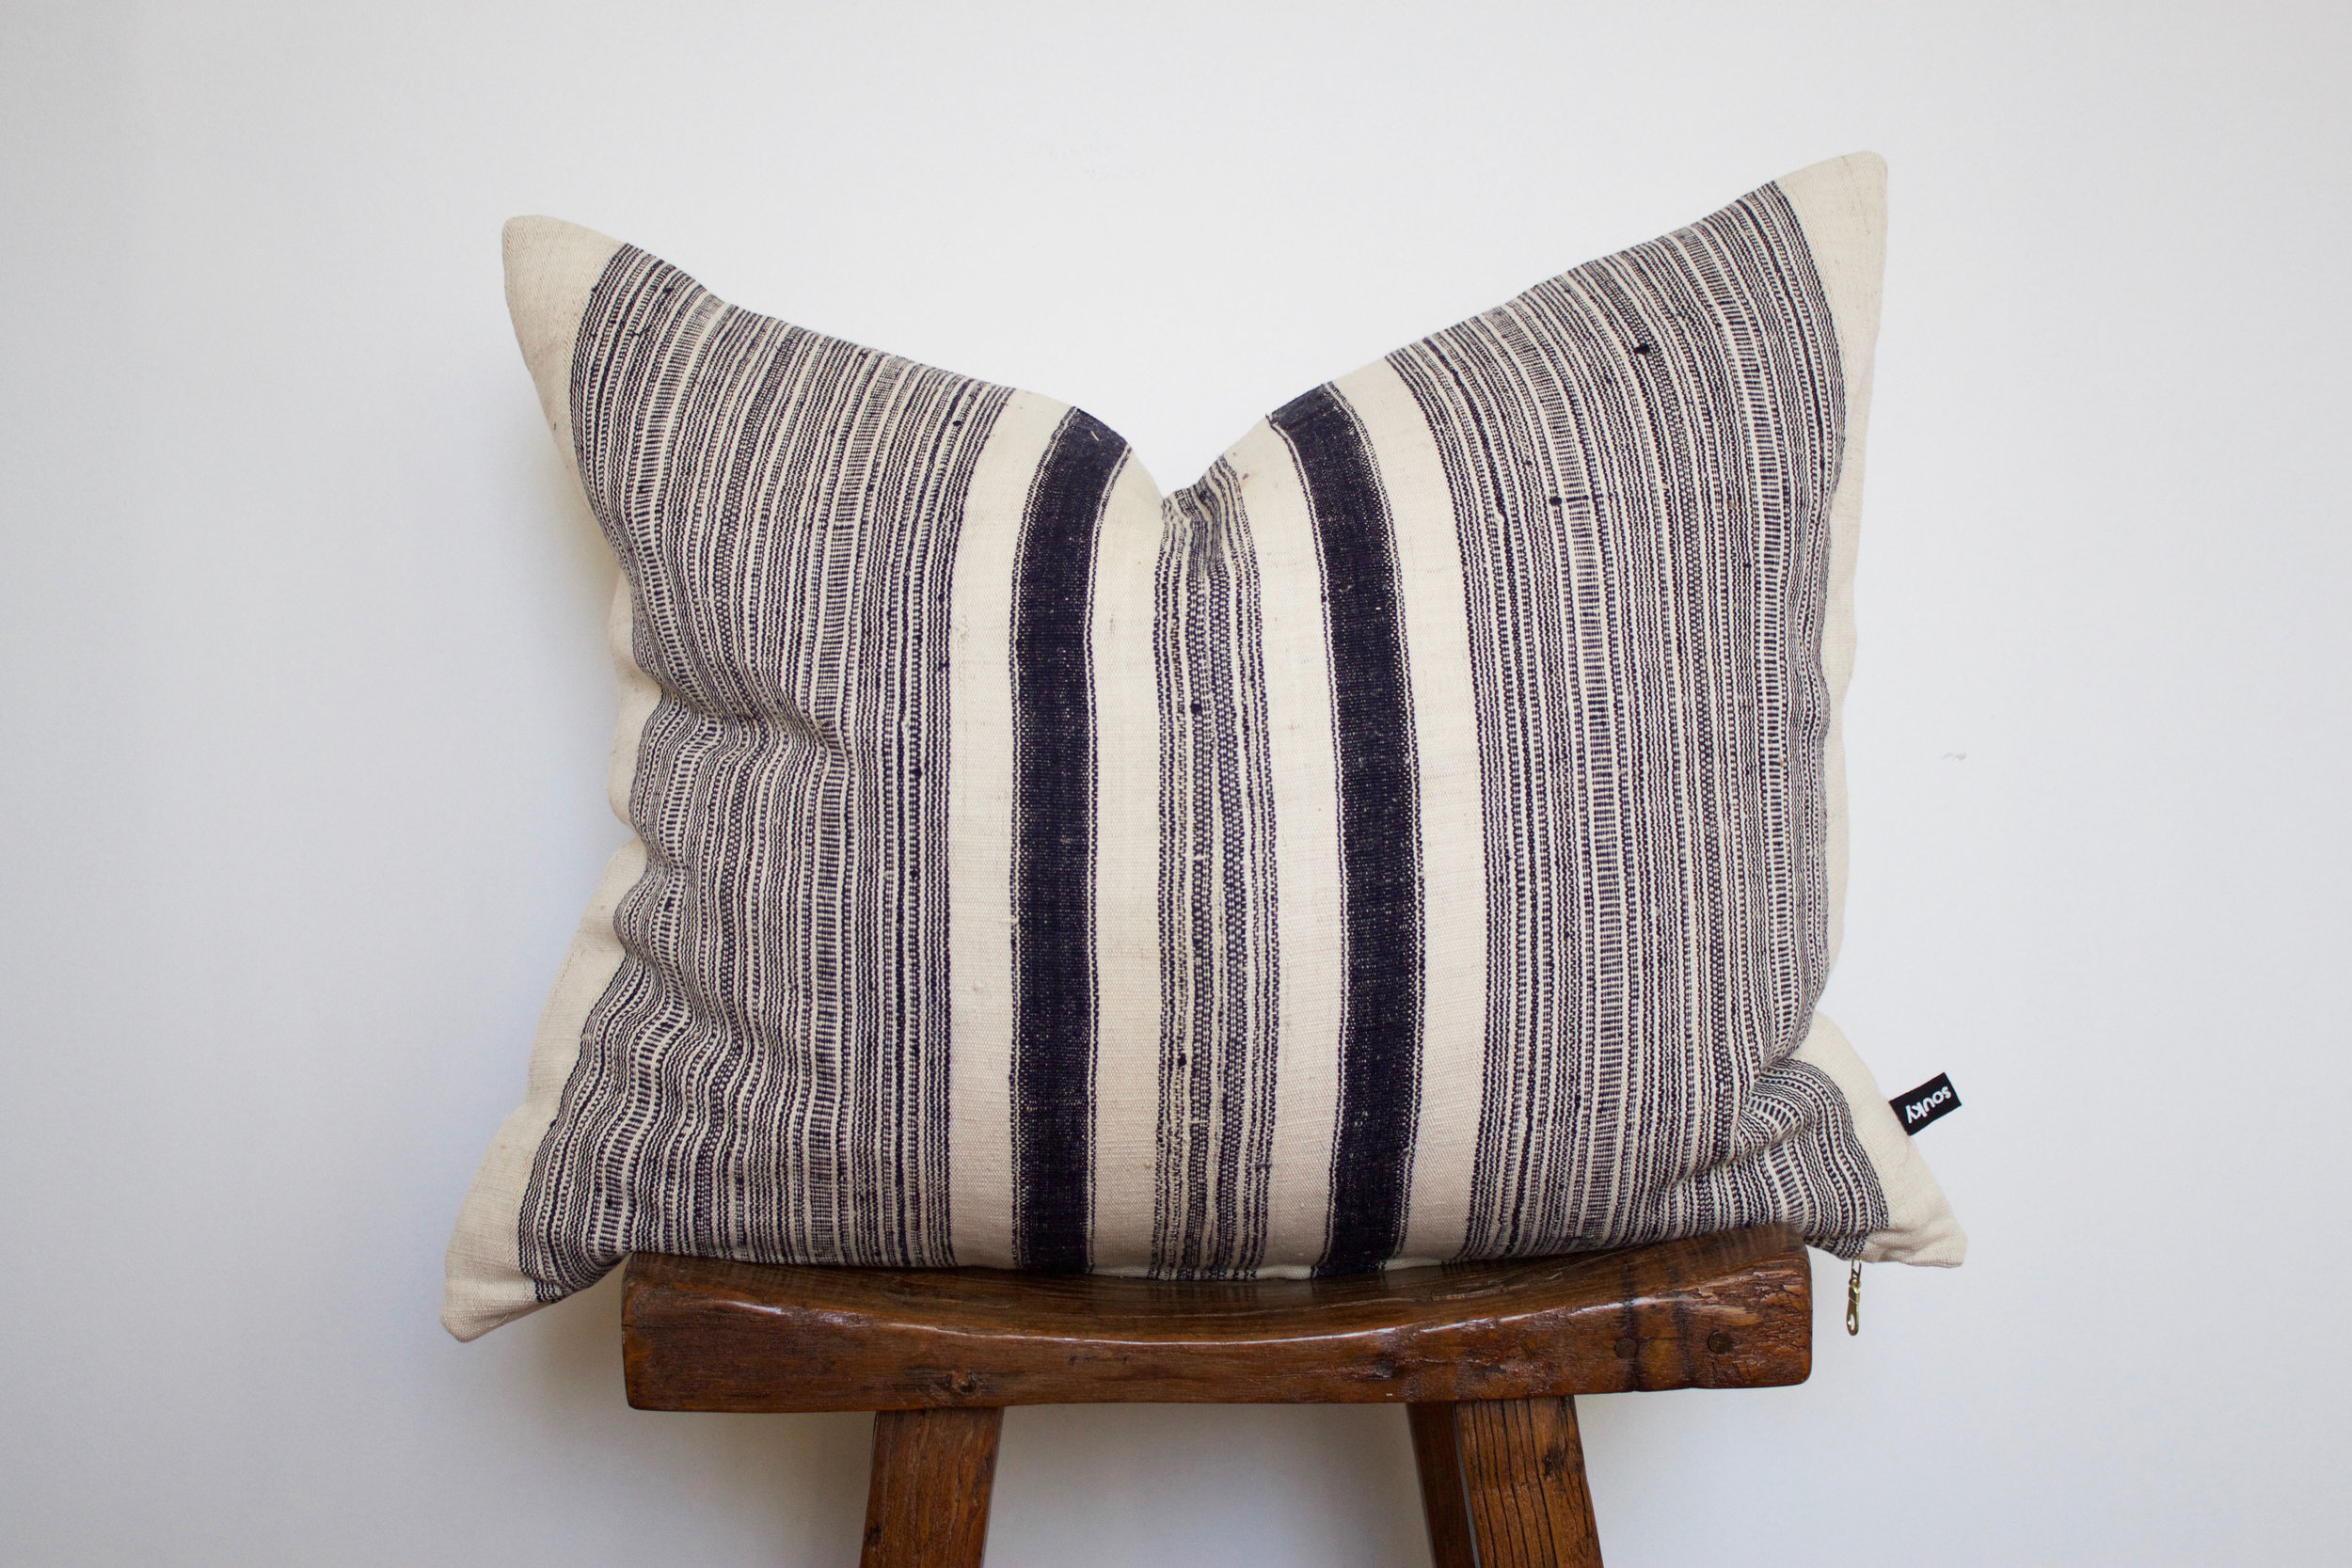 Tristen- No. 127   380 RMB  Pillow cover is made from handwoven hemp fabric sourced from Northern Thailand  Size: Roughly 60x50 cm  Pillow back is made from a neutral cotton/linen blend  Zipper on bottom of pillow  Down insert included  Hand wash in cold water